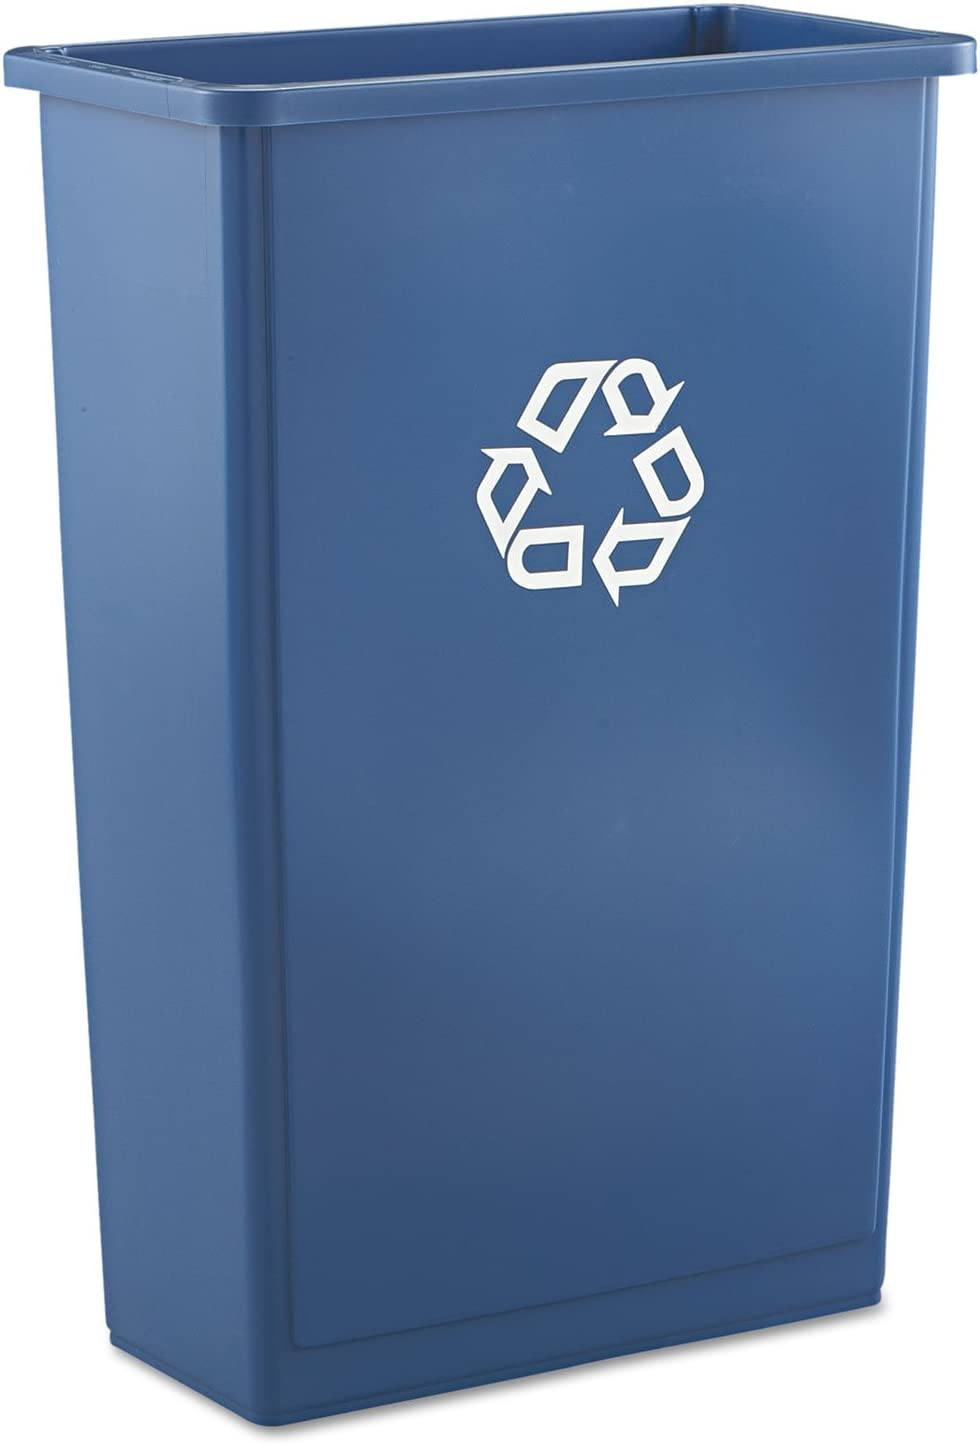 Rubbermaid  354007GN Commercial Slim Jim Recycling Container with Venting 23